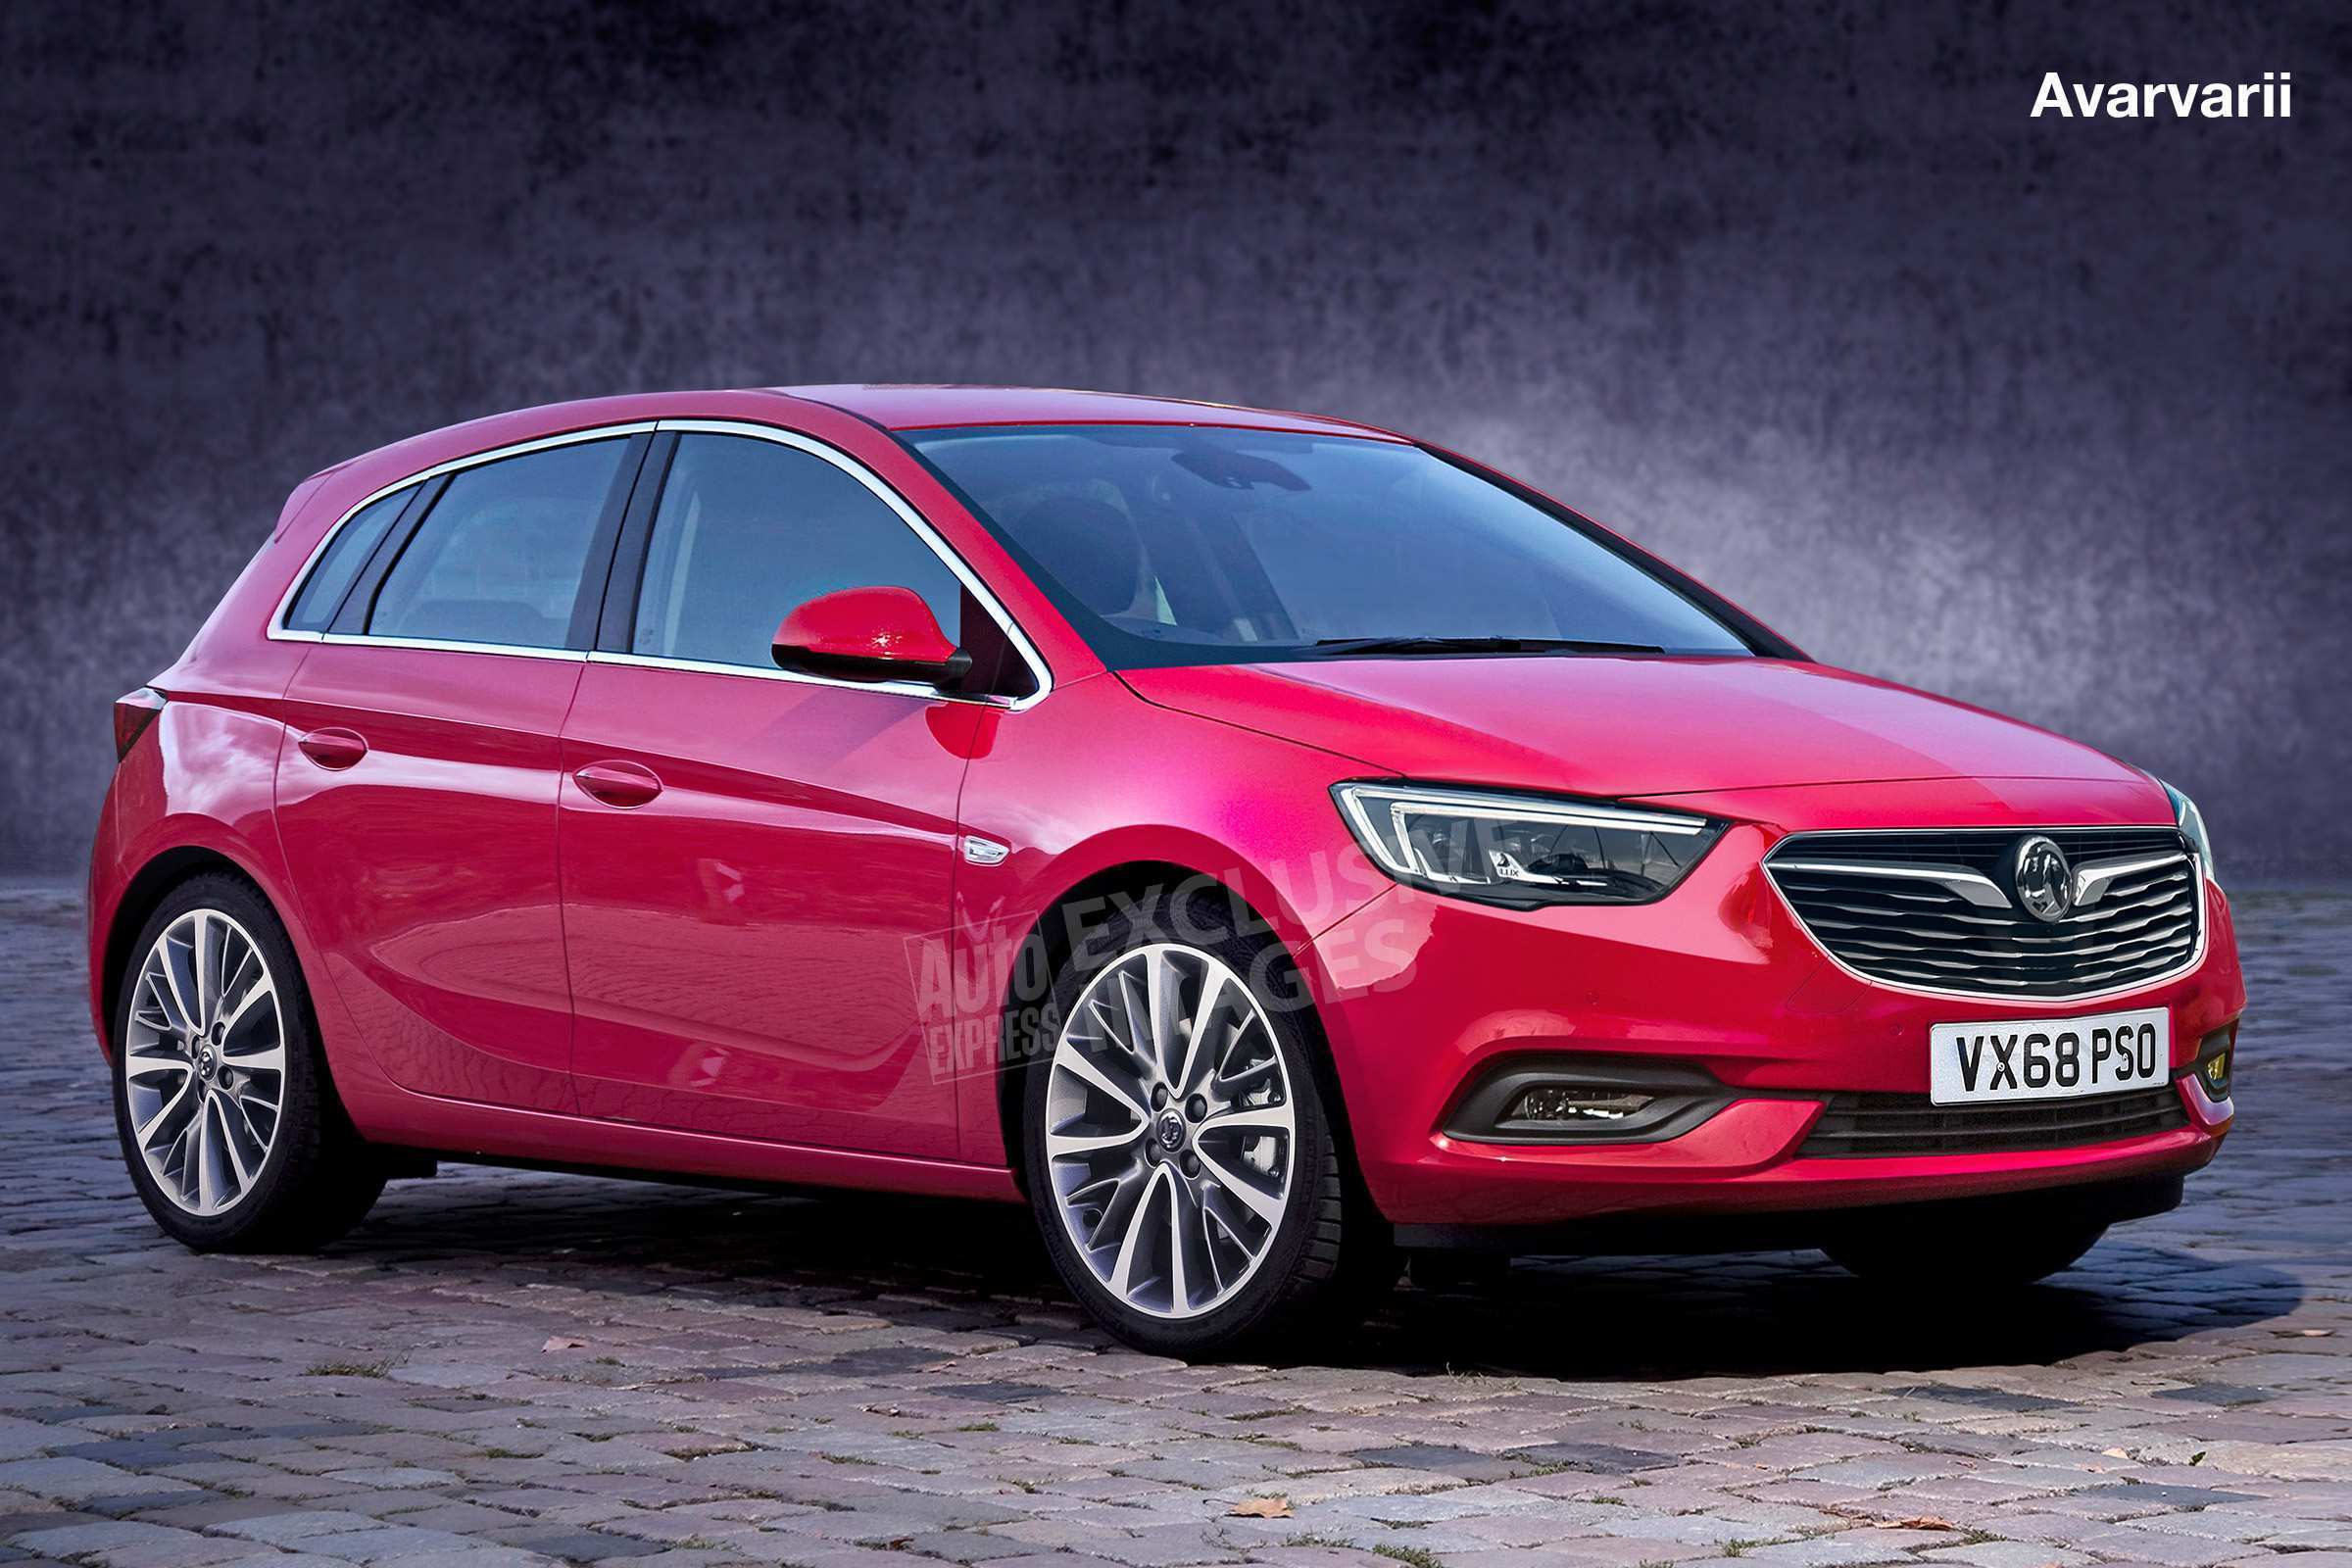 74 Best Review 2020 New Opel Astra 2018 Rumors with 2020 New Opel Astra 2018